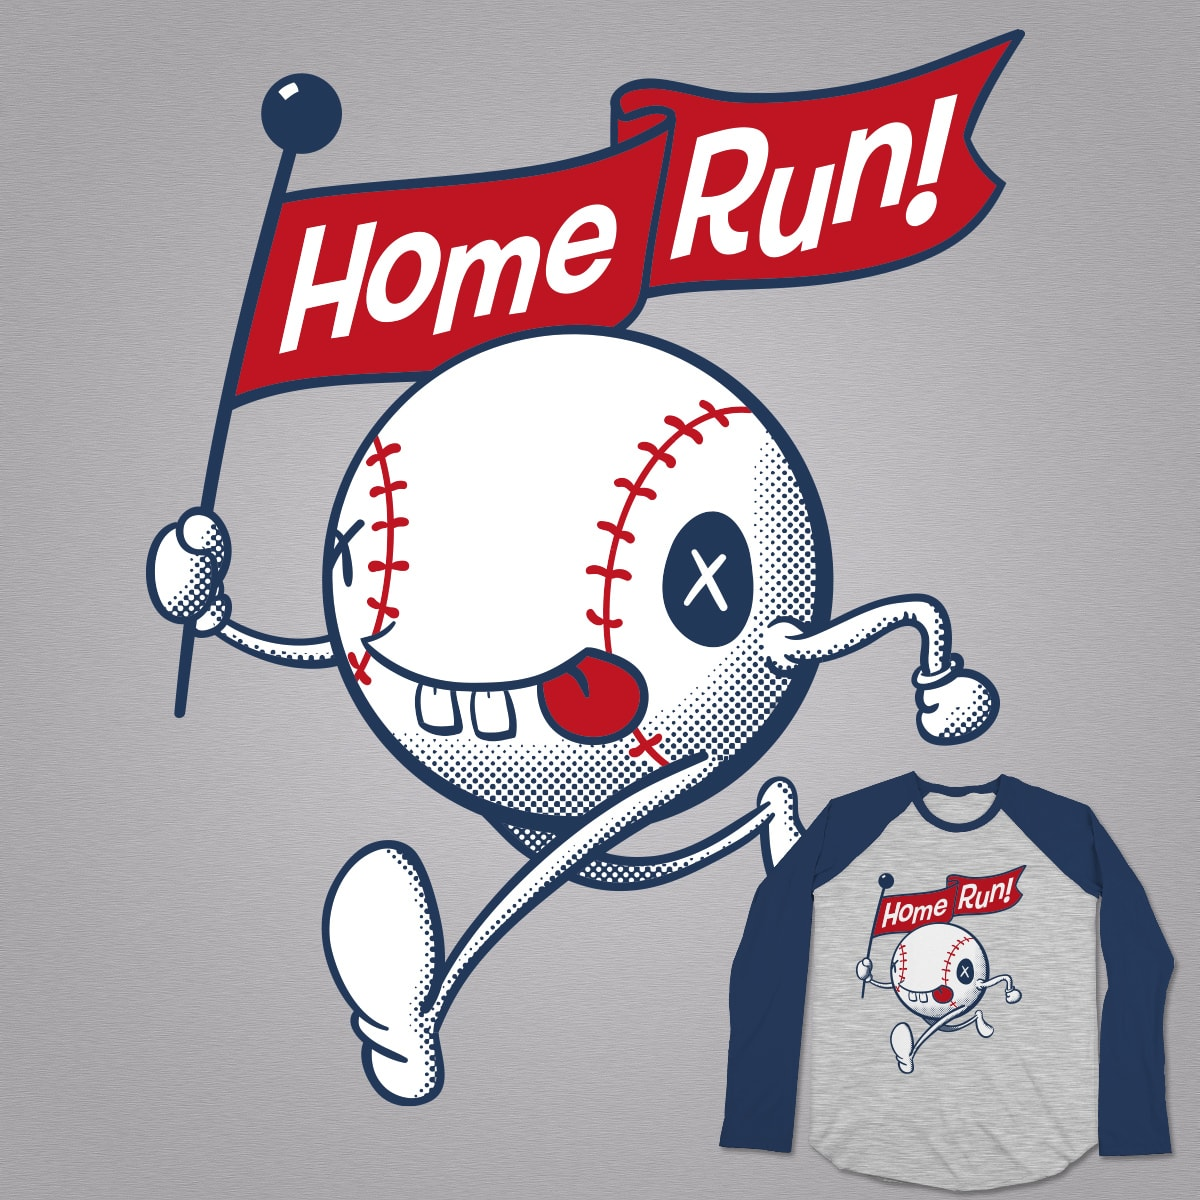 Home Run! by Dan Harman on Threadless